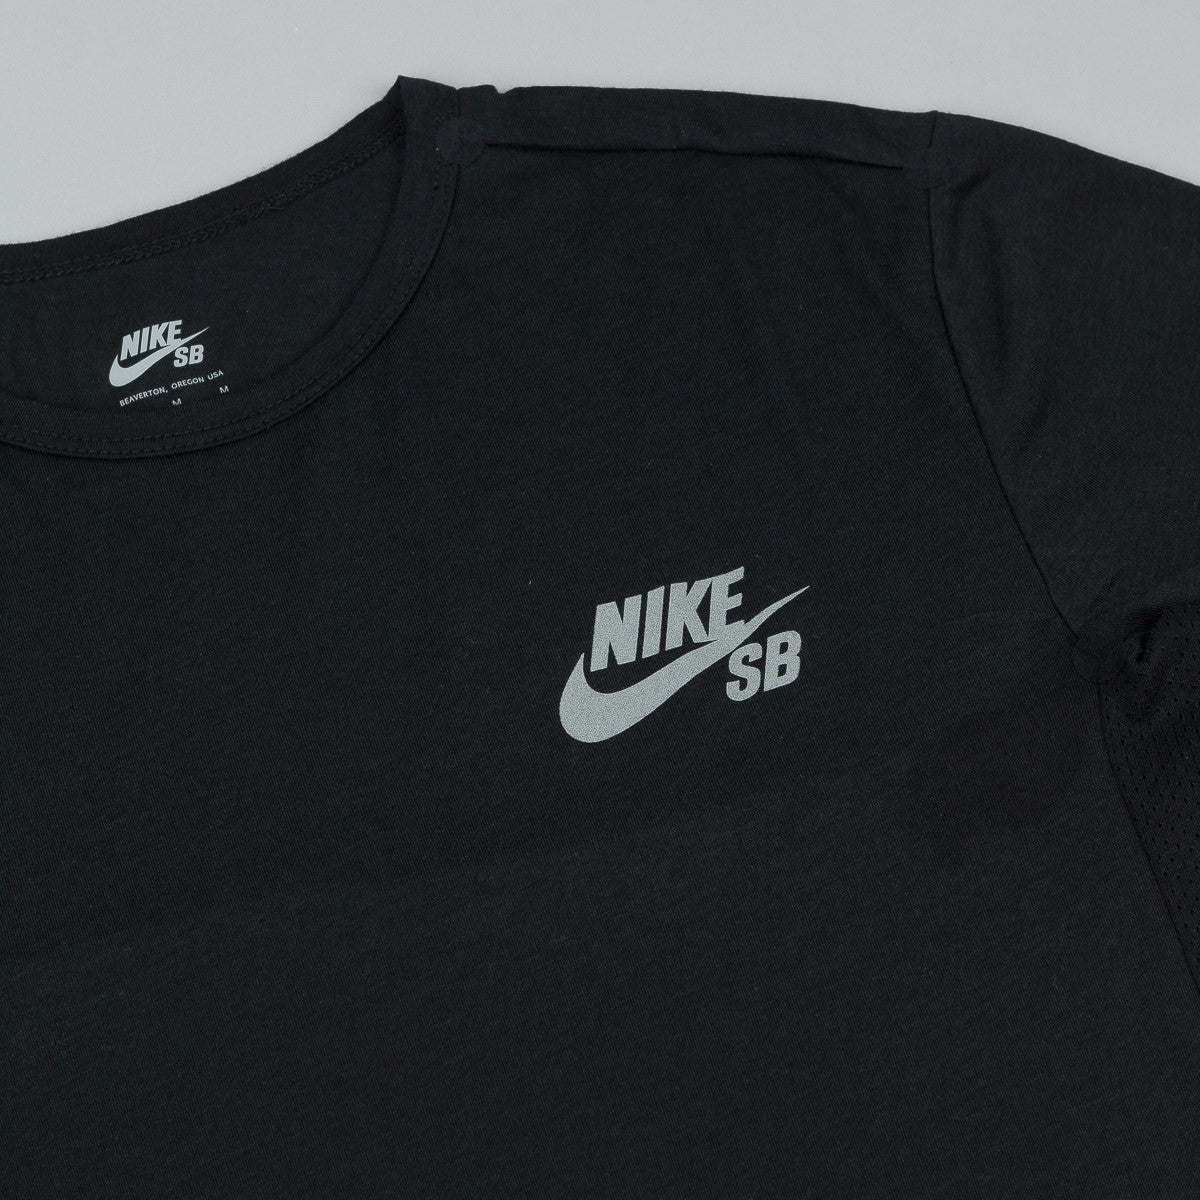 Nike SB Dri-Fit Skyline Cool T-Shirt - Black / Reflective